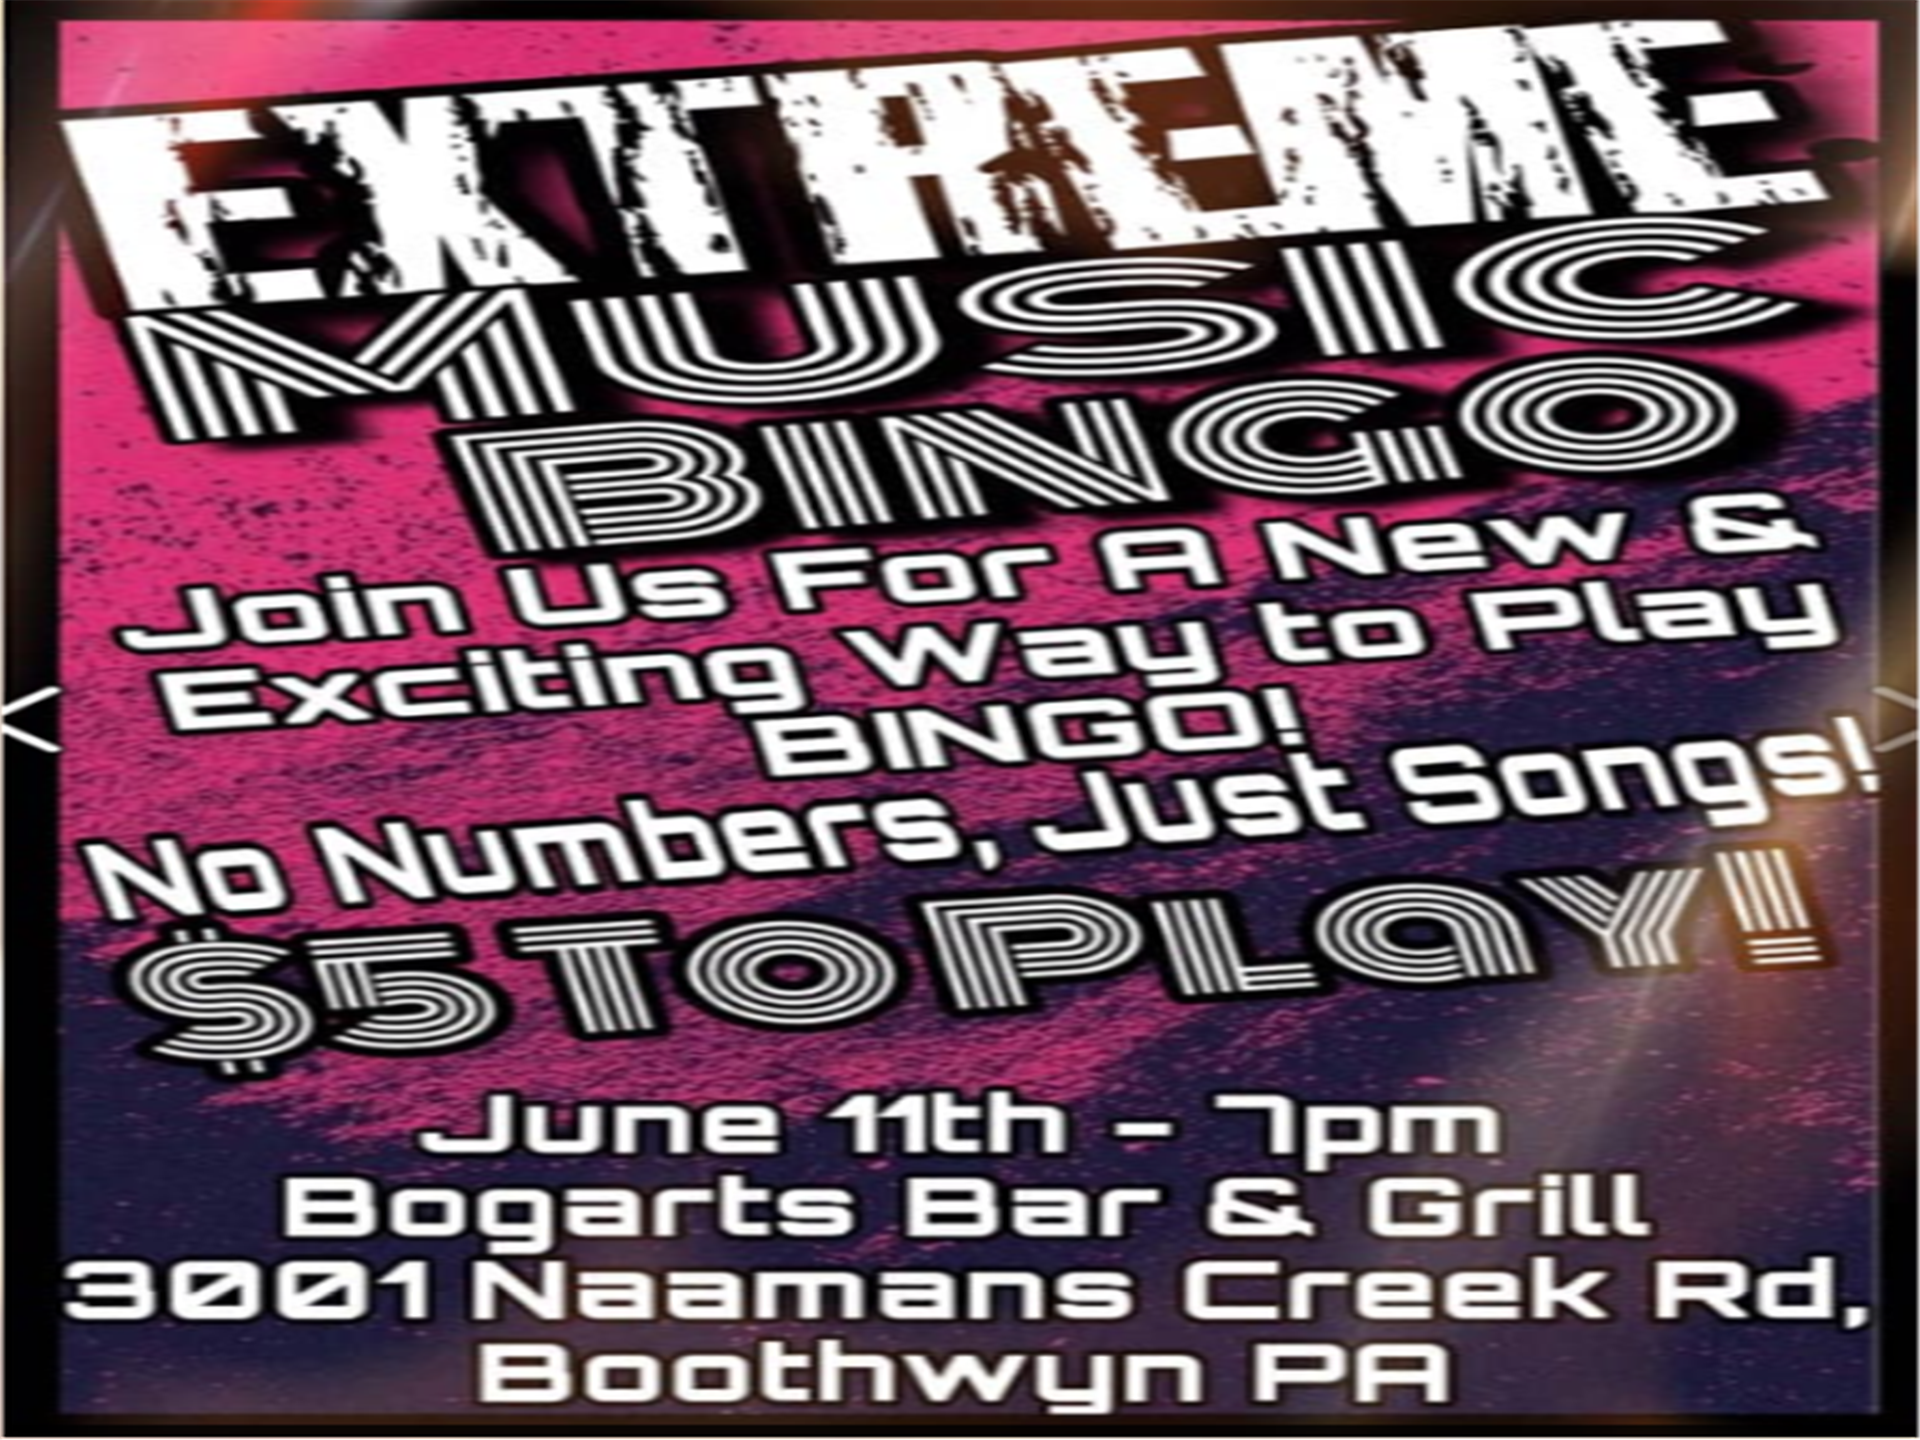 extreme music bingo - join us for a ne & exciting way to play BINGO! No numbers, just songs! $5 to play! june 11th at 7pm bogarts bar & grill 3001 naamans creek rd. boothwyn PA